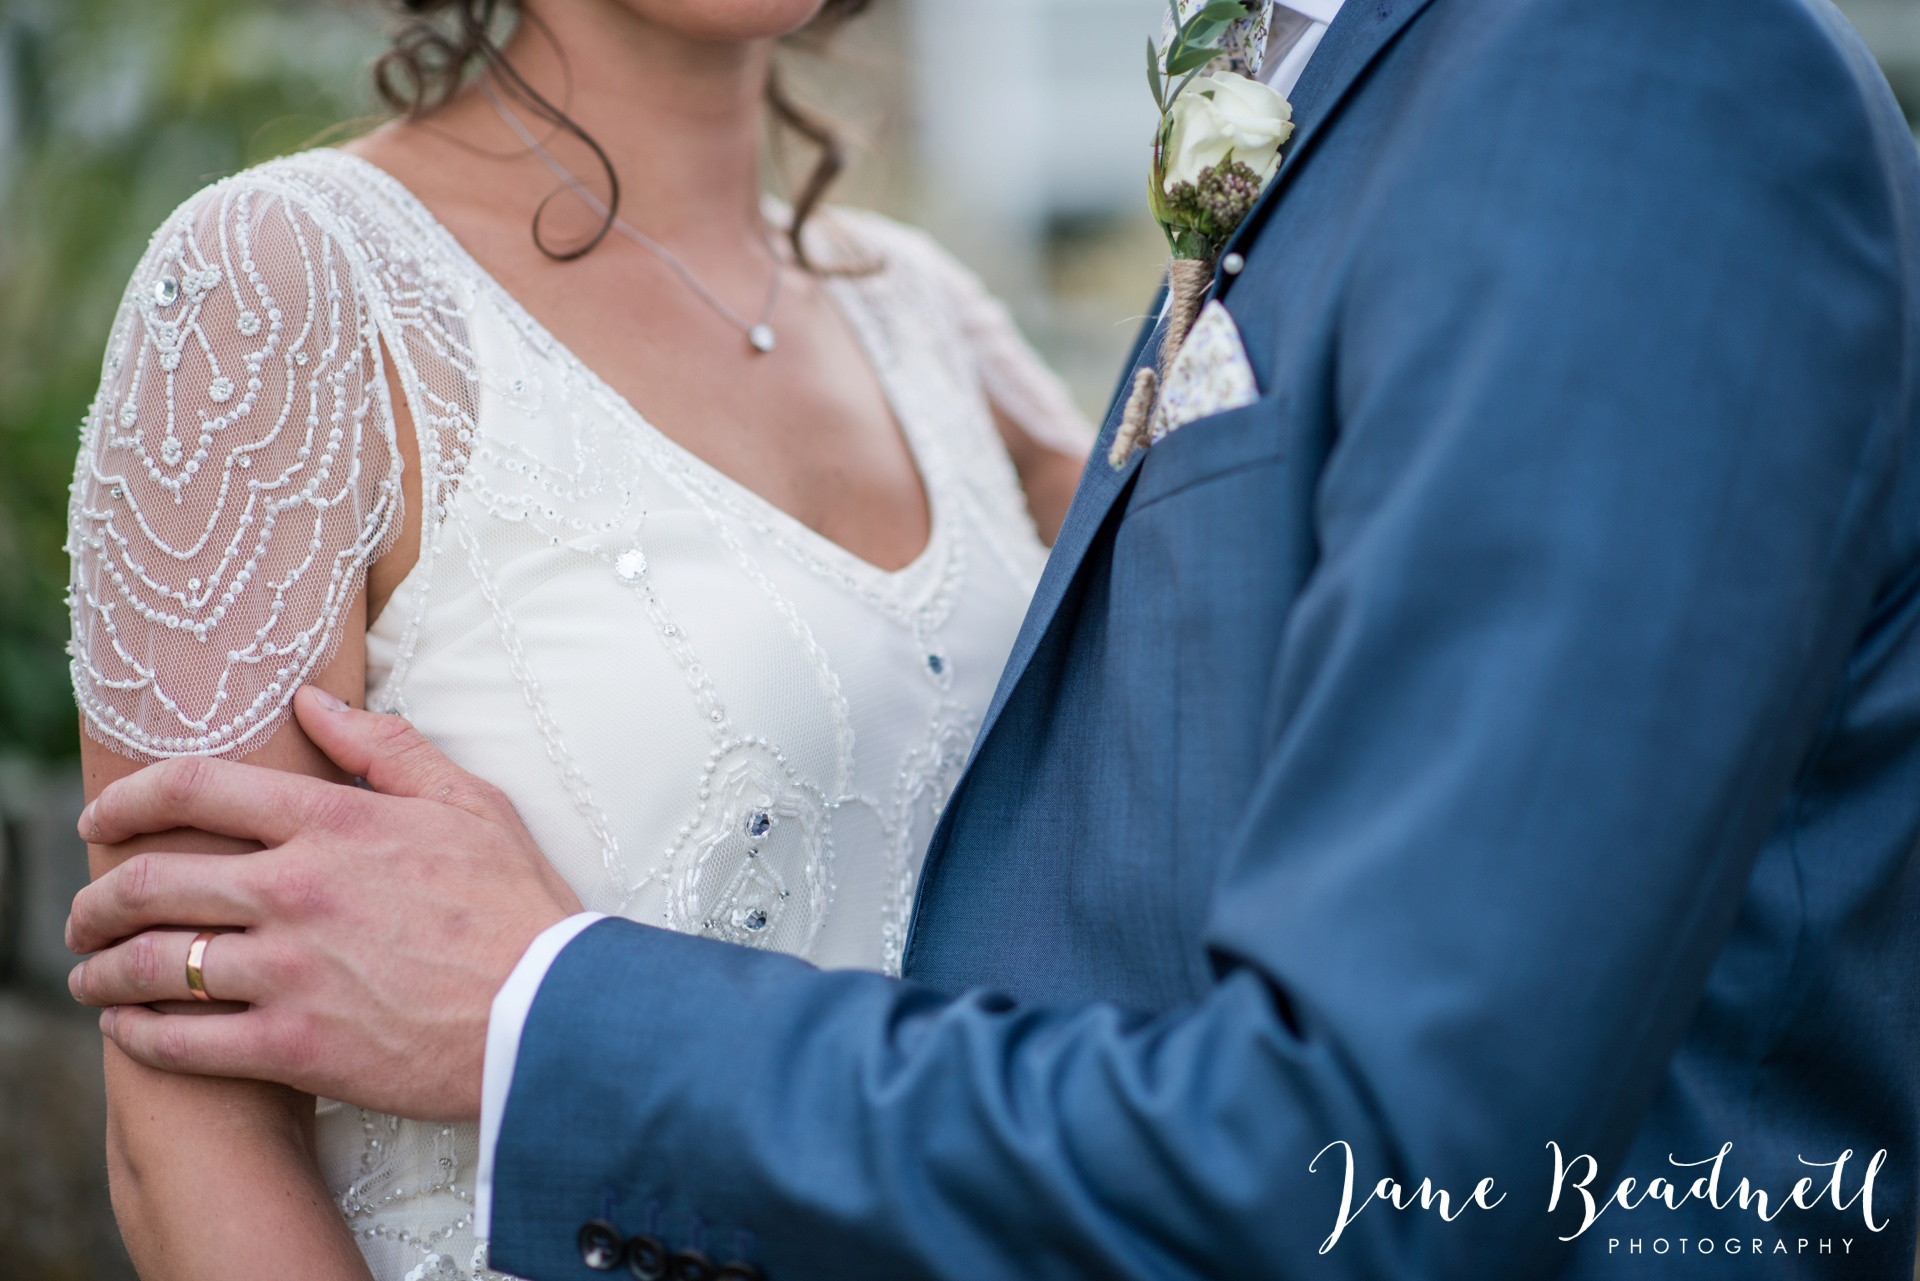 Jane Beadnell fine art wedding photographer Leeds_0140